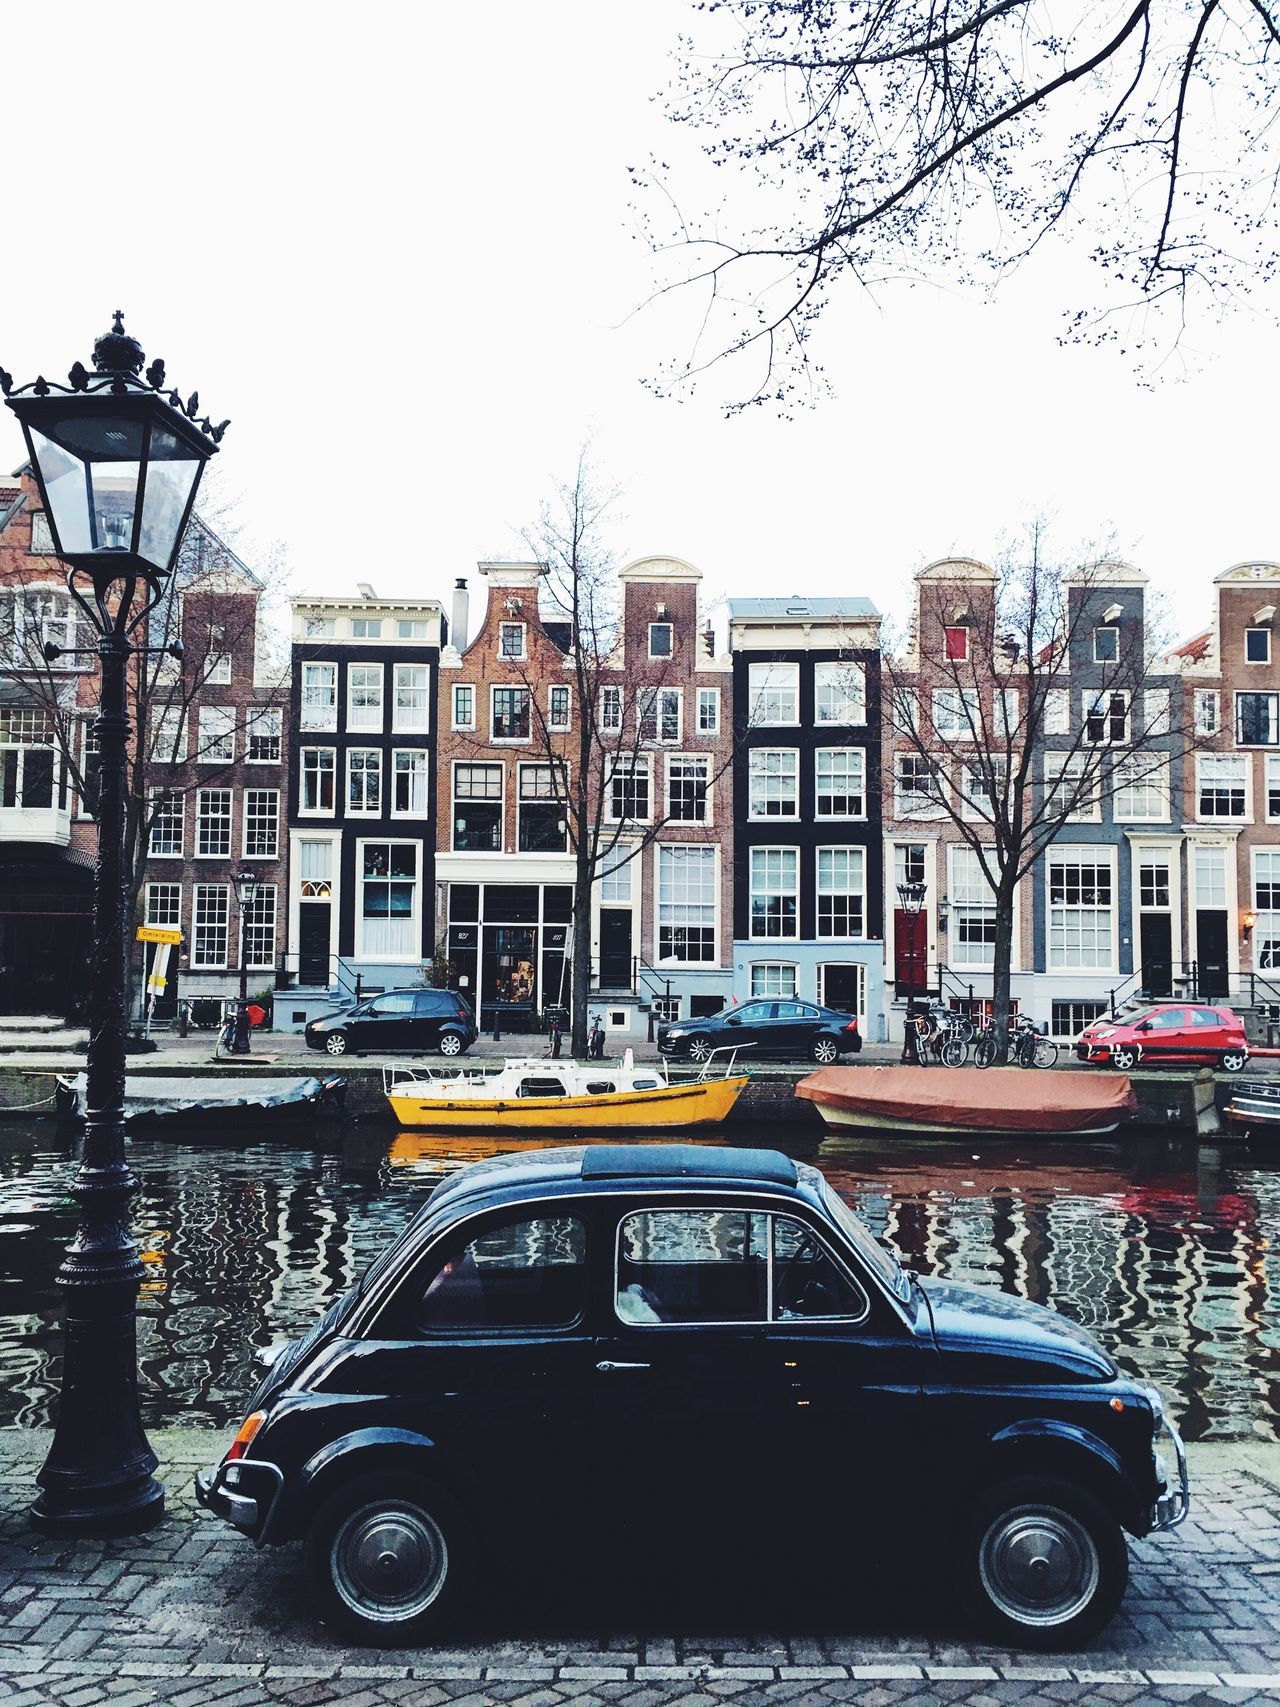 Amsterdam City Street City Street Streetphotography Transportation Architecture Building Exterior City Life Mode Of Transport Car Built Structure Outdoors Travel Destinations Day Cityscape No People Lifestyles Real Photography Architecture Travel City Street Parking